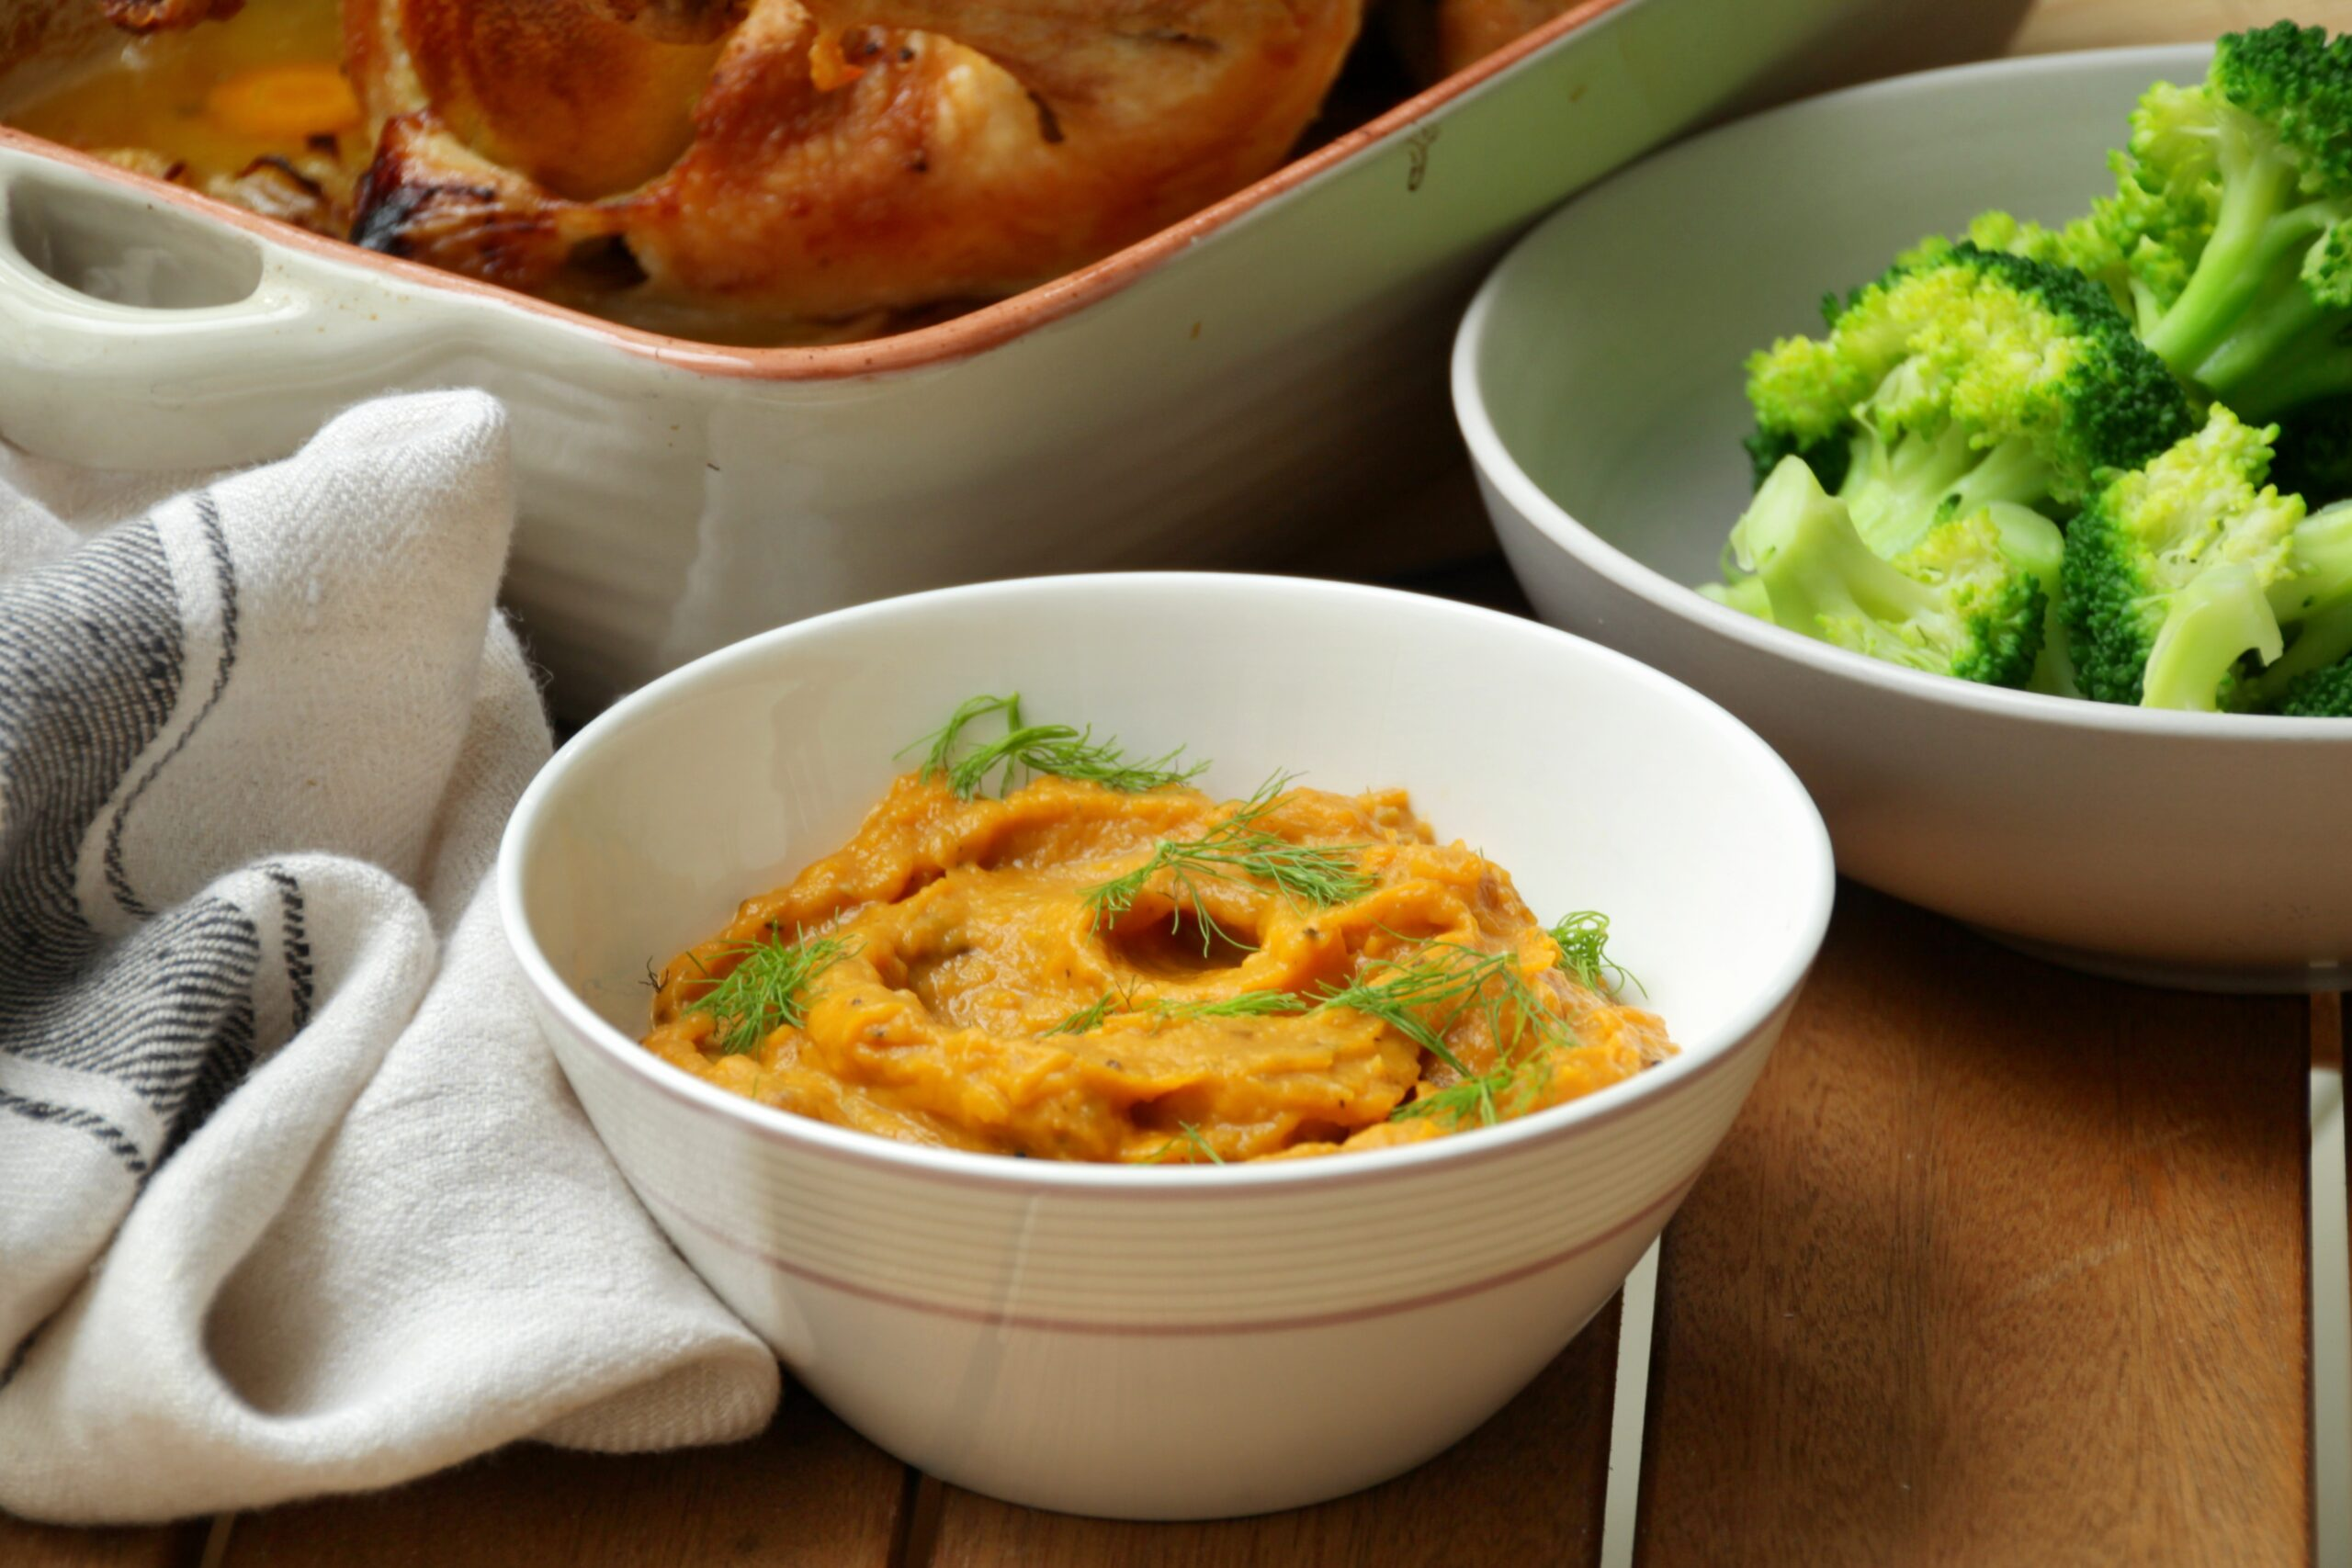 Fennel And Butternut Squash Puree (Paleo, Whole30, Low Carb)